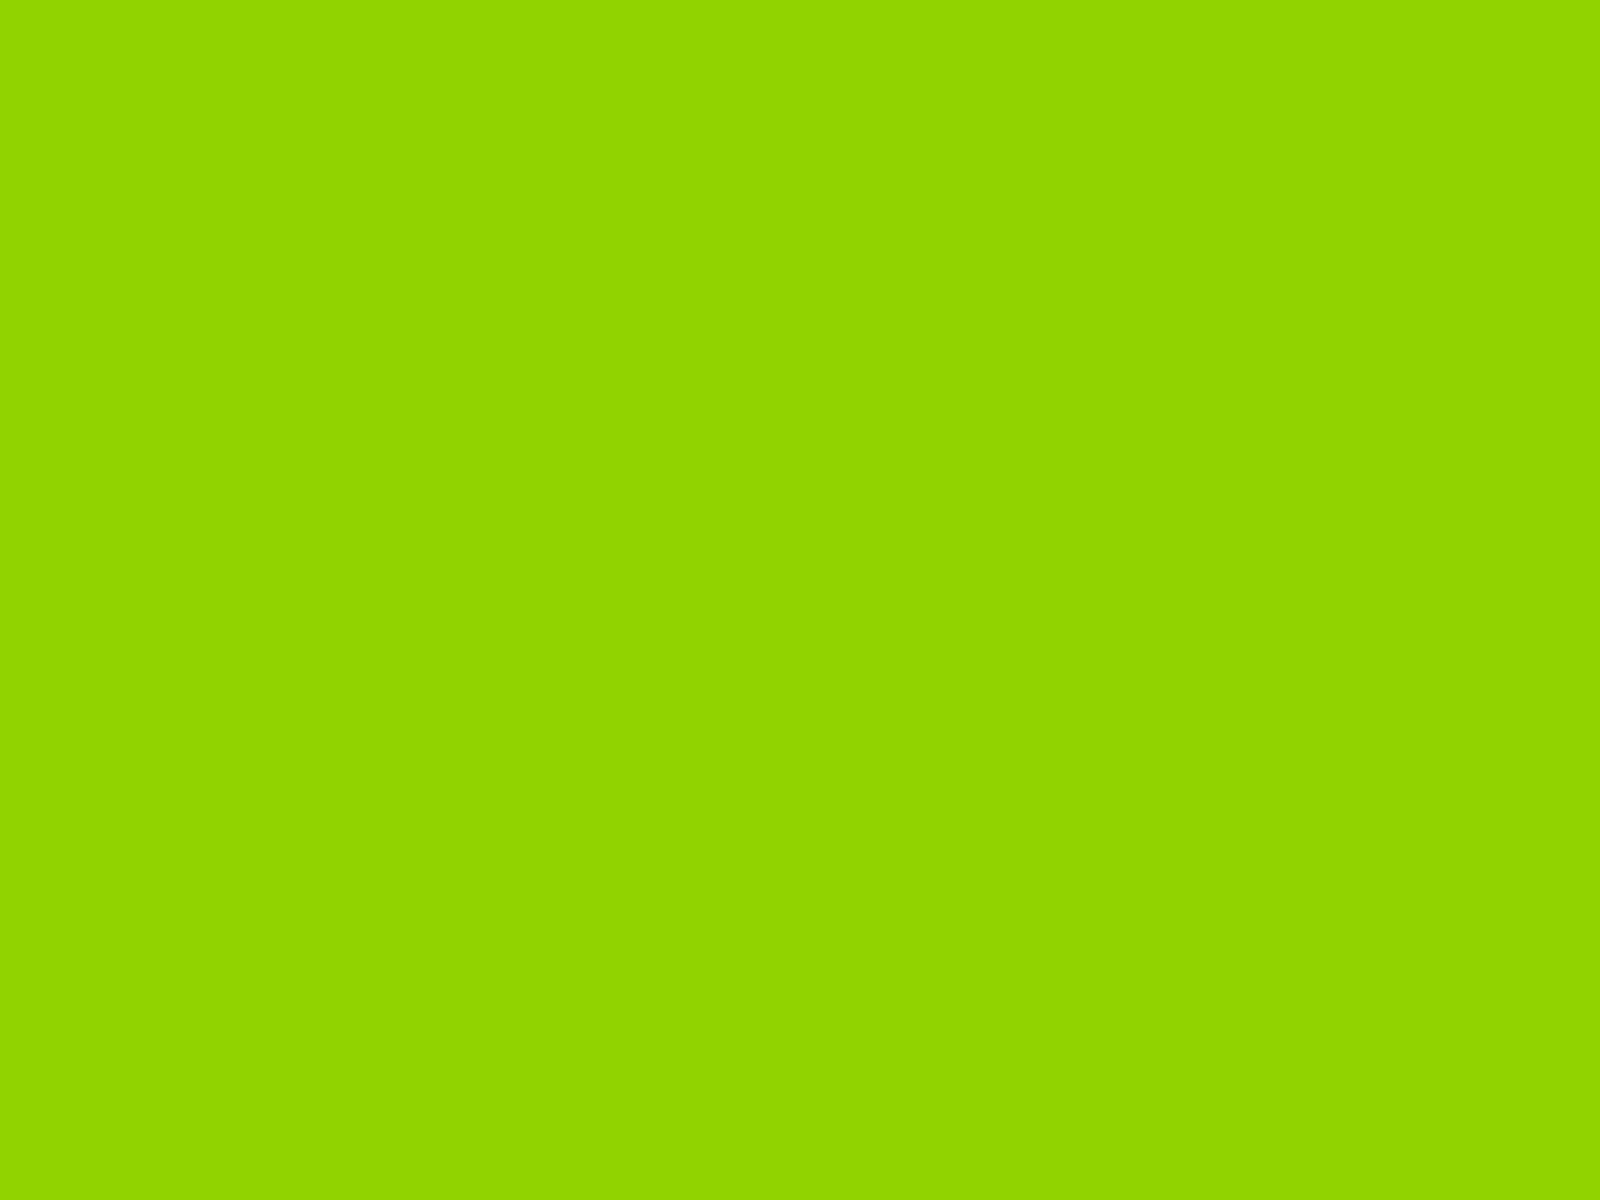 1600x1200 Sheen Green Solid Color Background